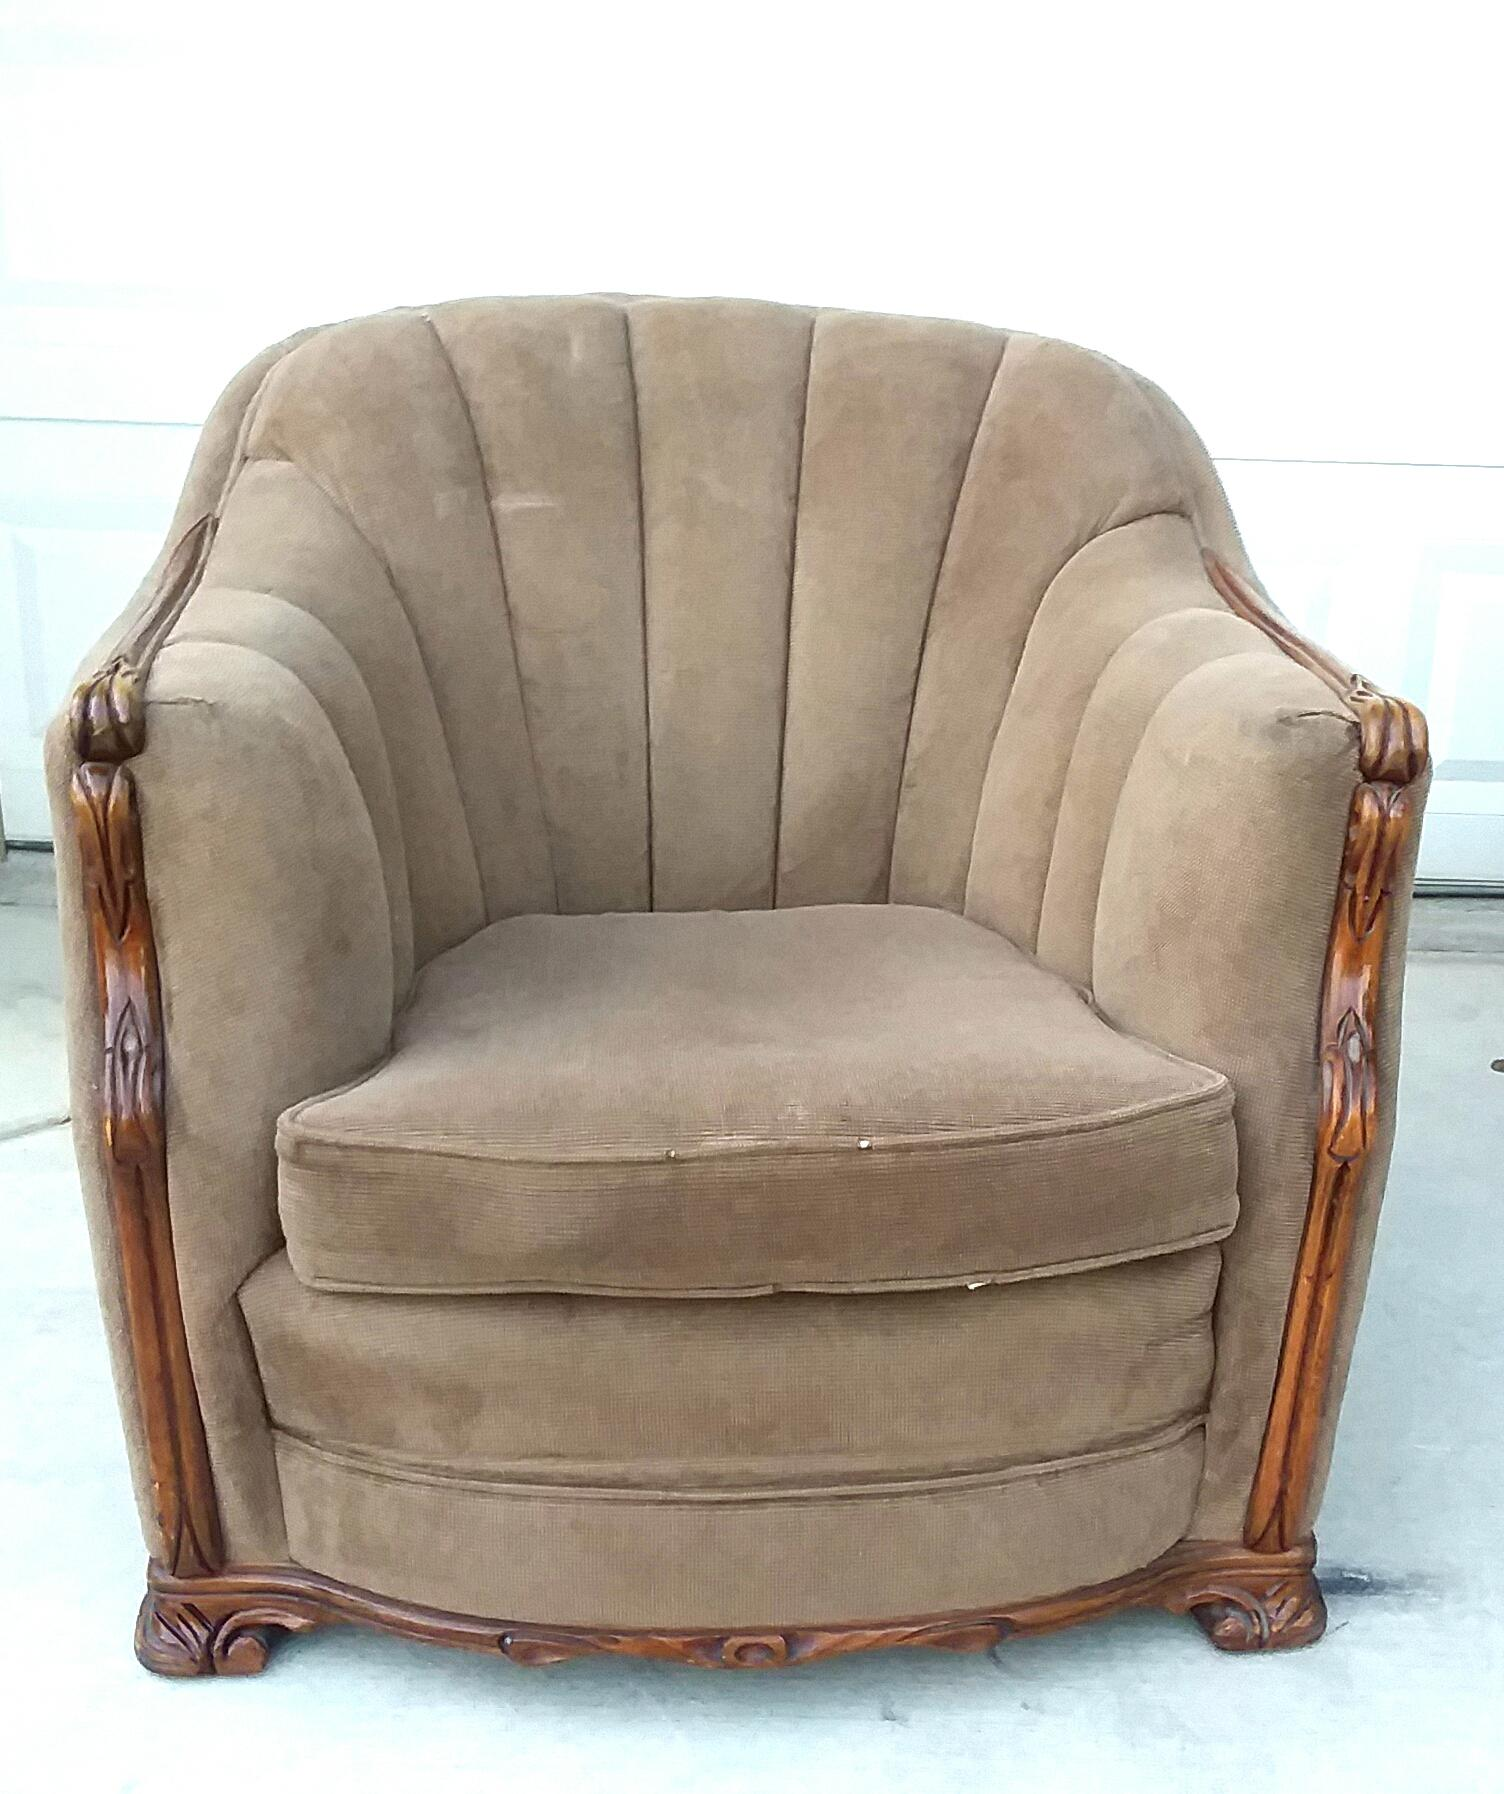 Mahogany U0026 Mohair Art Deco Club Chair For Sale   Image 10 Of 10